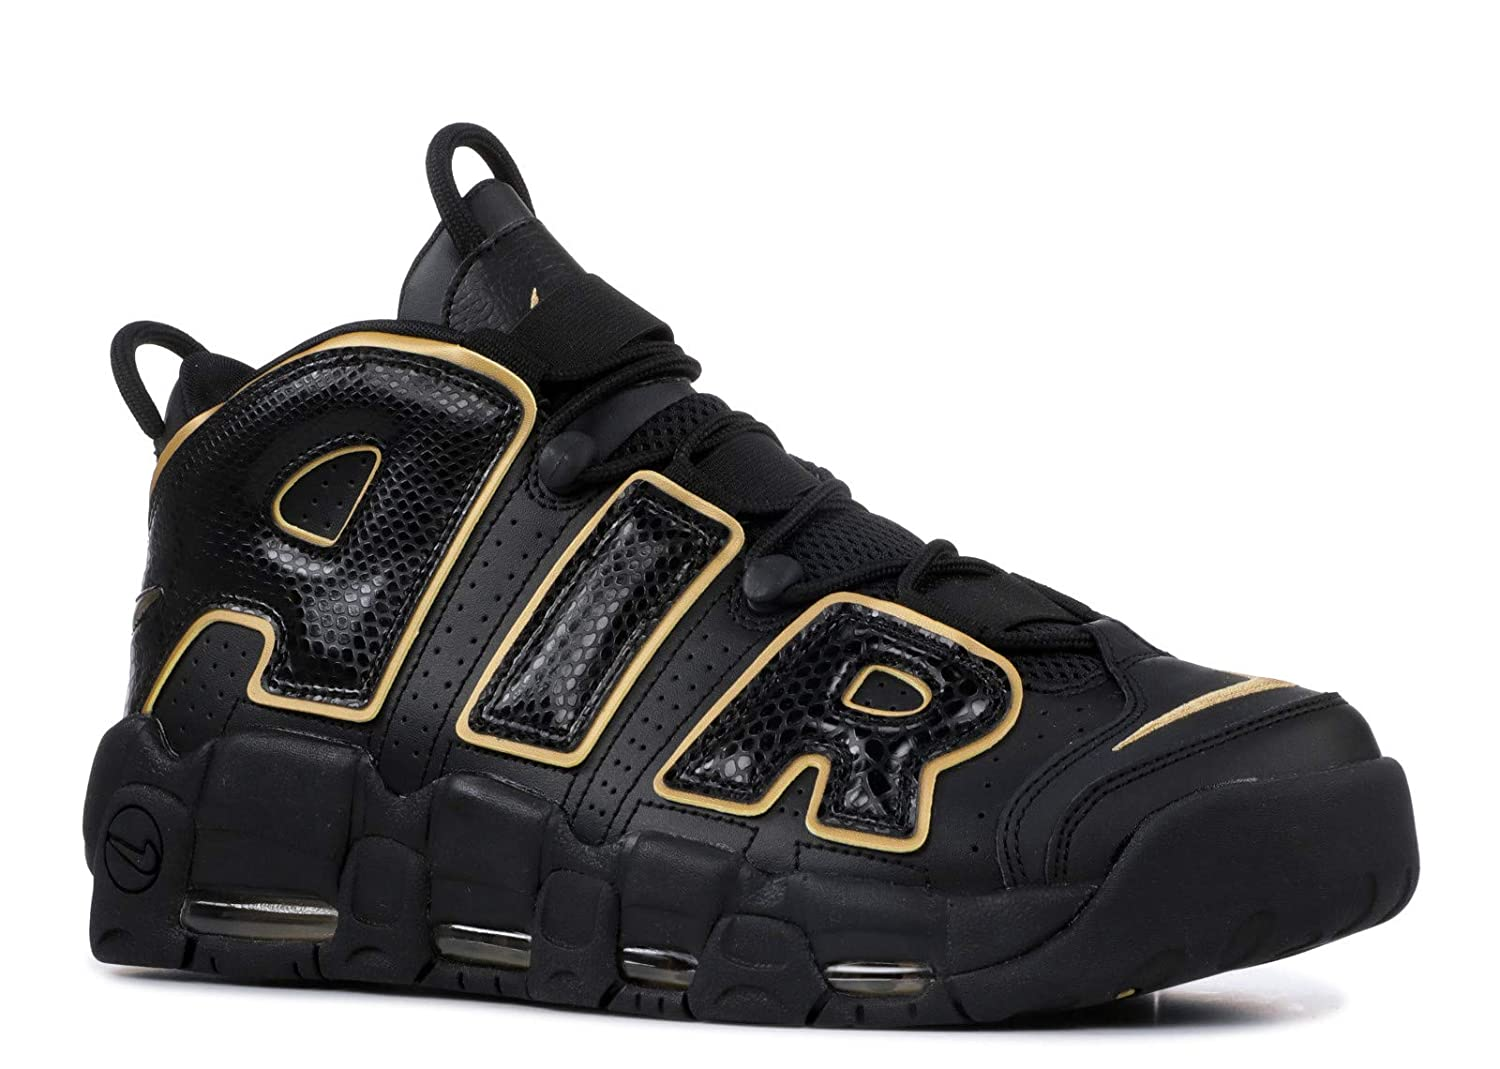 Noir (noir Metallic or 001) 42 EU Nike Air More Uptempo '96 France QS, Chaussures de Fitness Homme